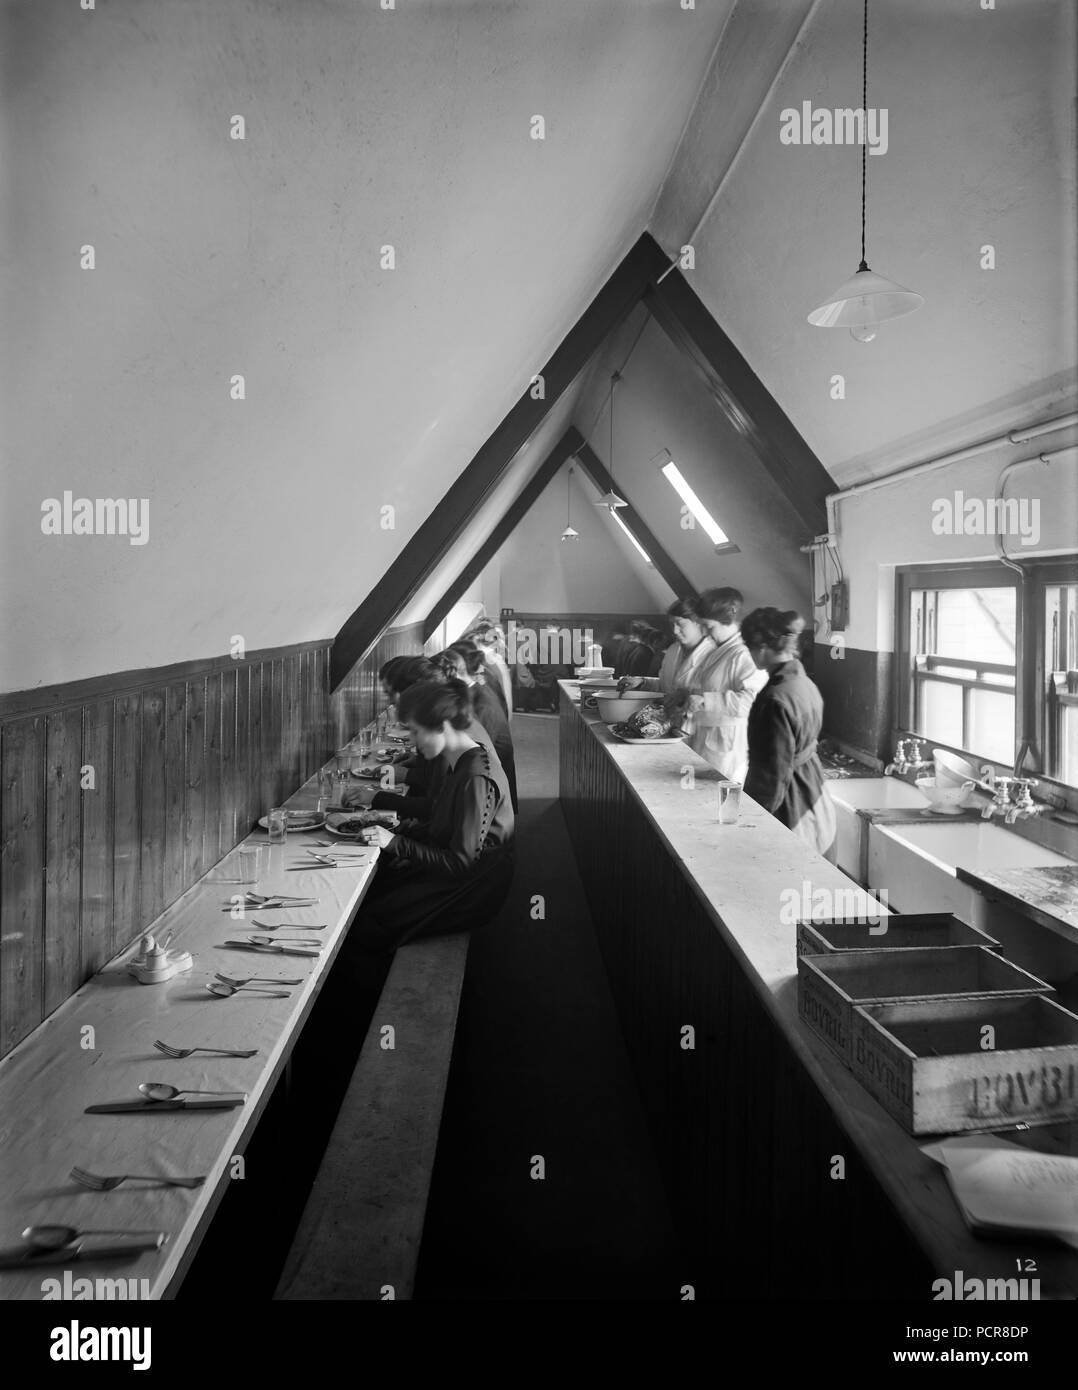 Workers' cafeteria, 41 Kingsway, Westminster, London, 1920. An interior view showing workers dining in the canteen above 'Pen Corner', a large shop owned by LG Sloan Limited, selling and repairing Waterman's and other fine pens. LG Sloan Limited also supplied various accessories related to pens and correspondence. - Stock Image